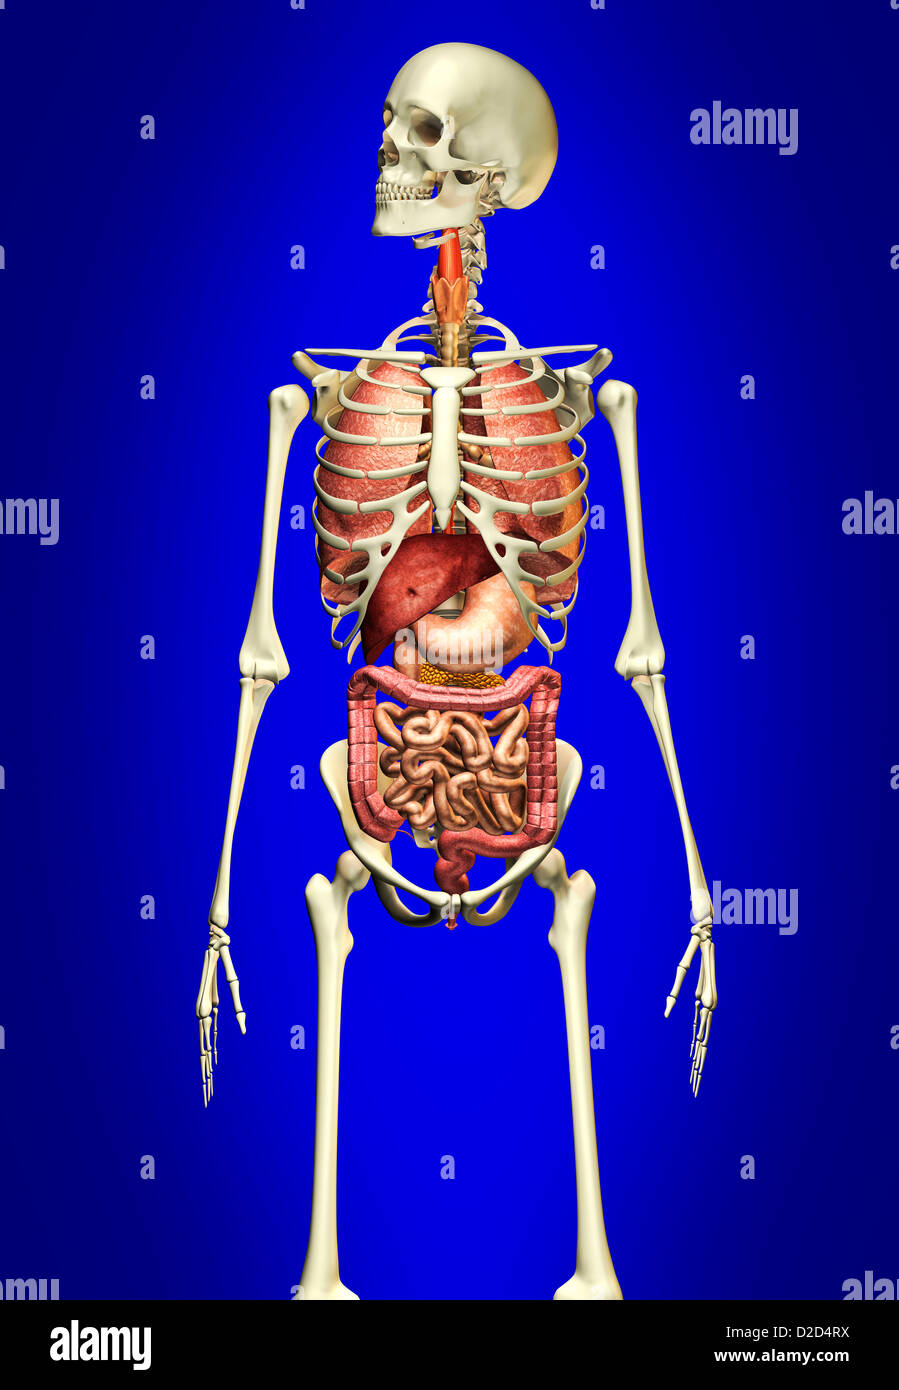 Human anatomy computer artwork - Stock Image